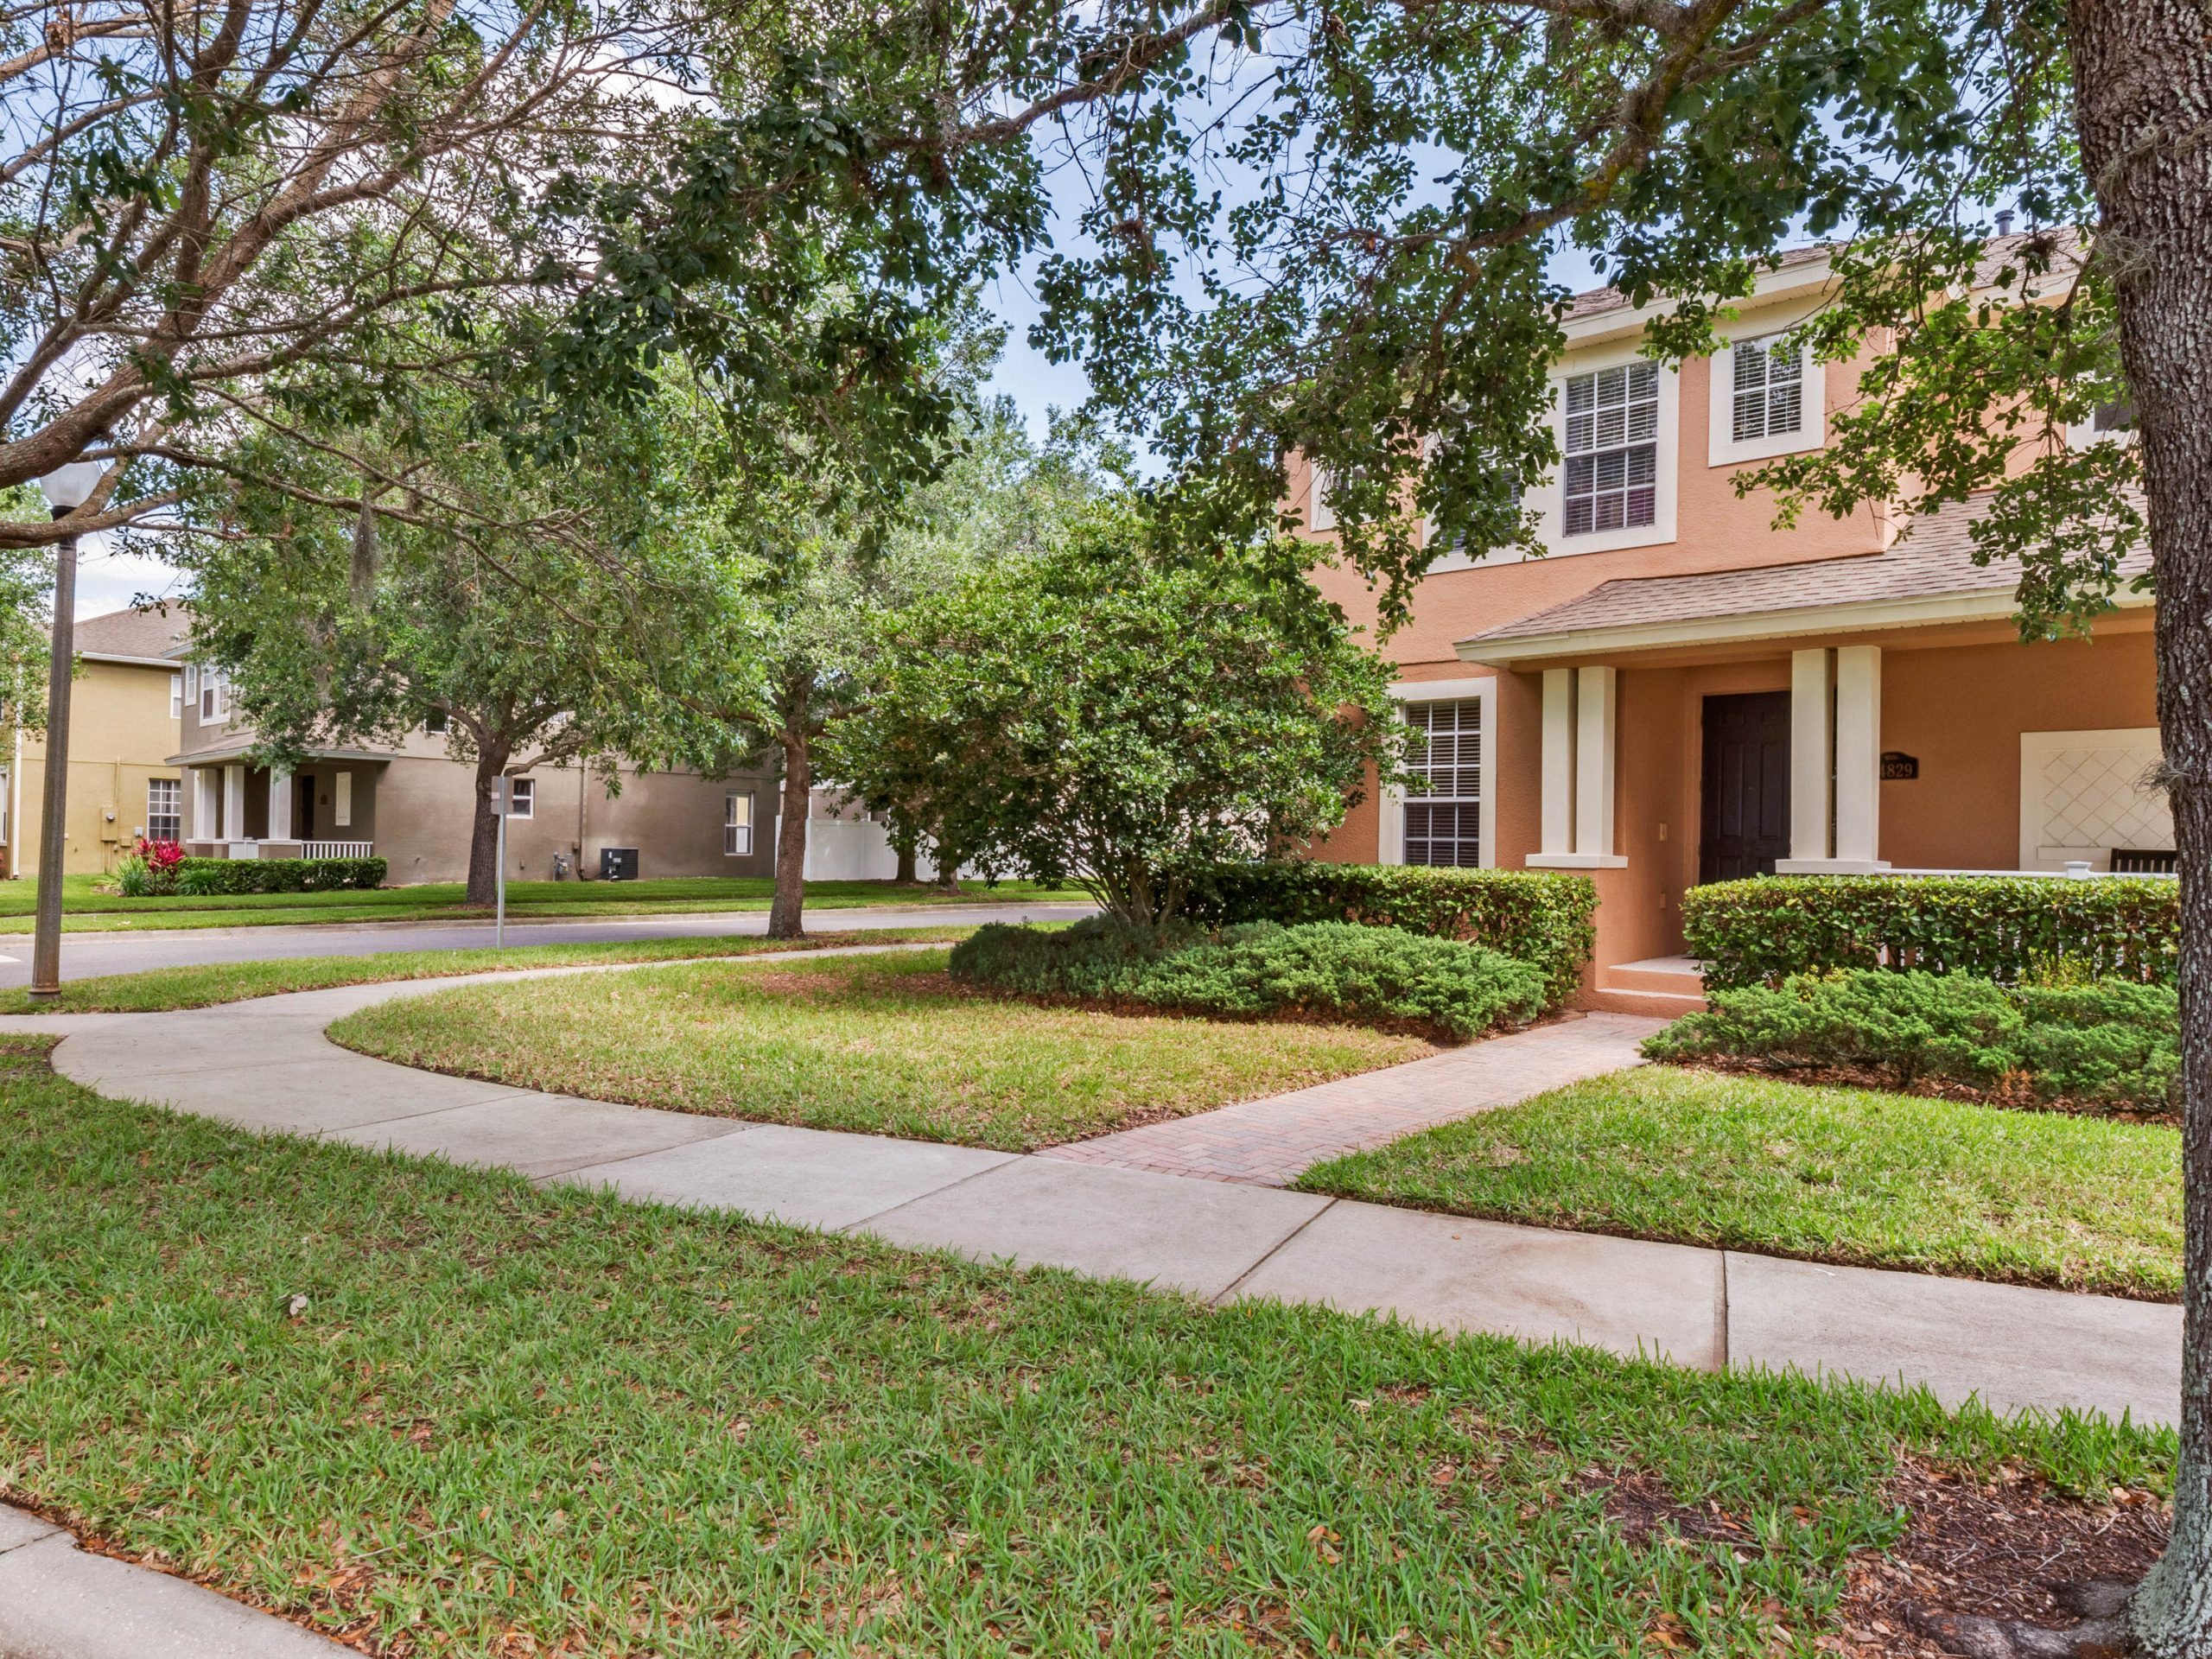 Newly Listed Winter Garden Home With Rare Income Producing Studio Apartment